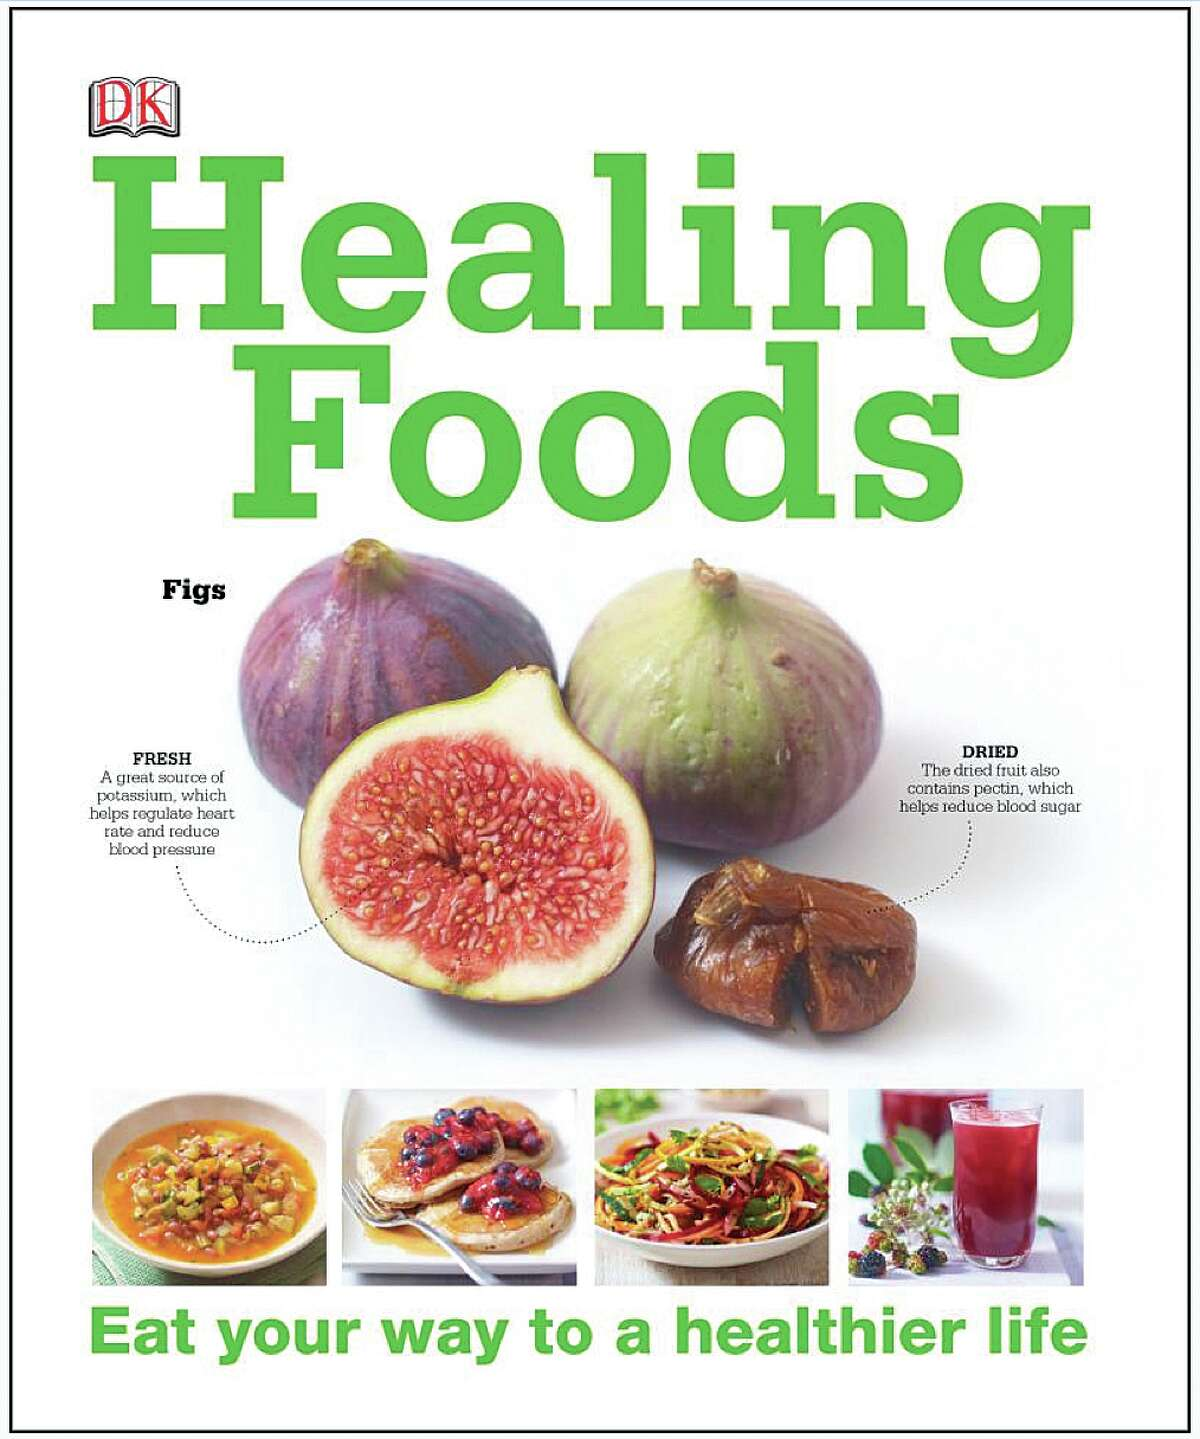 Healing Foods, Eat Your Way to a Healthier Life, by Susan Curtis, Pat Thomas and Dragana Vilinac, DK Books, 352 pages, $25